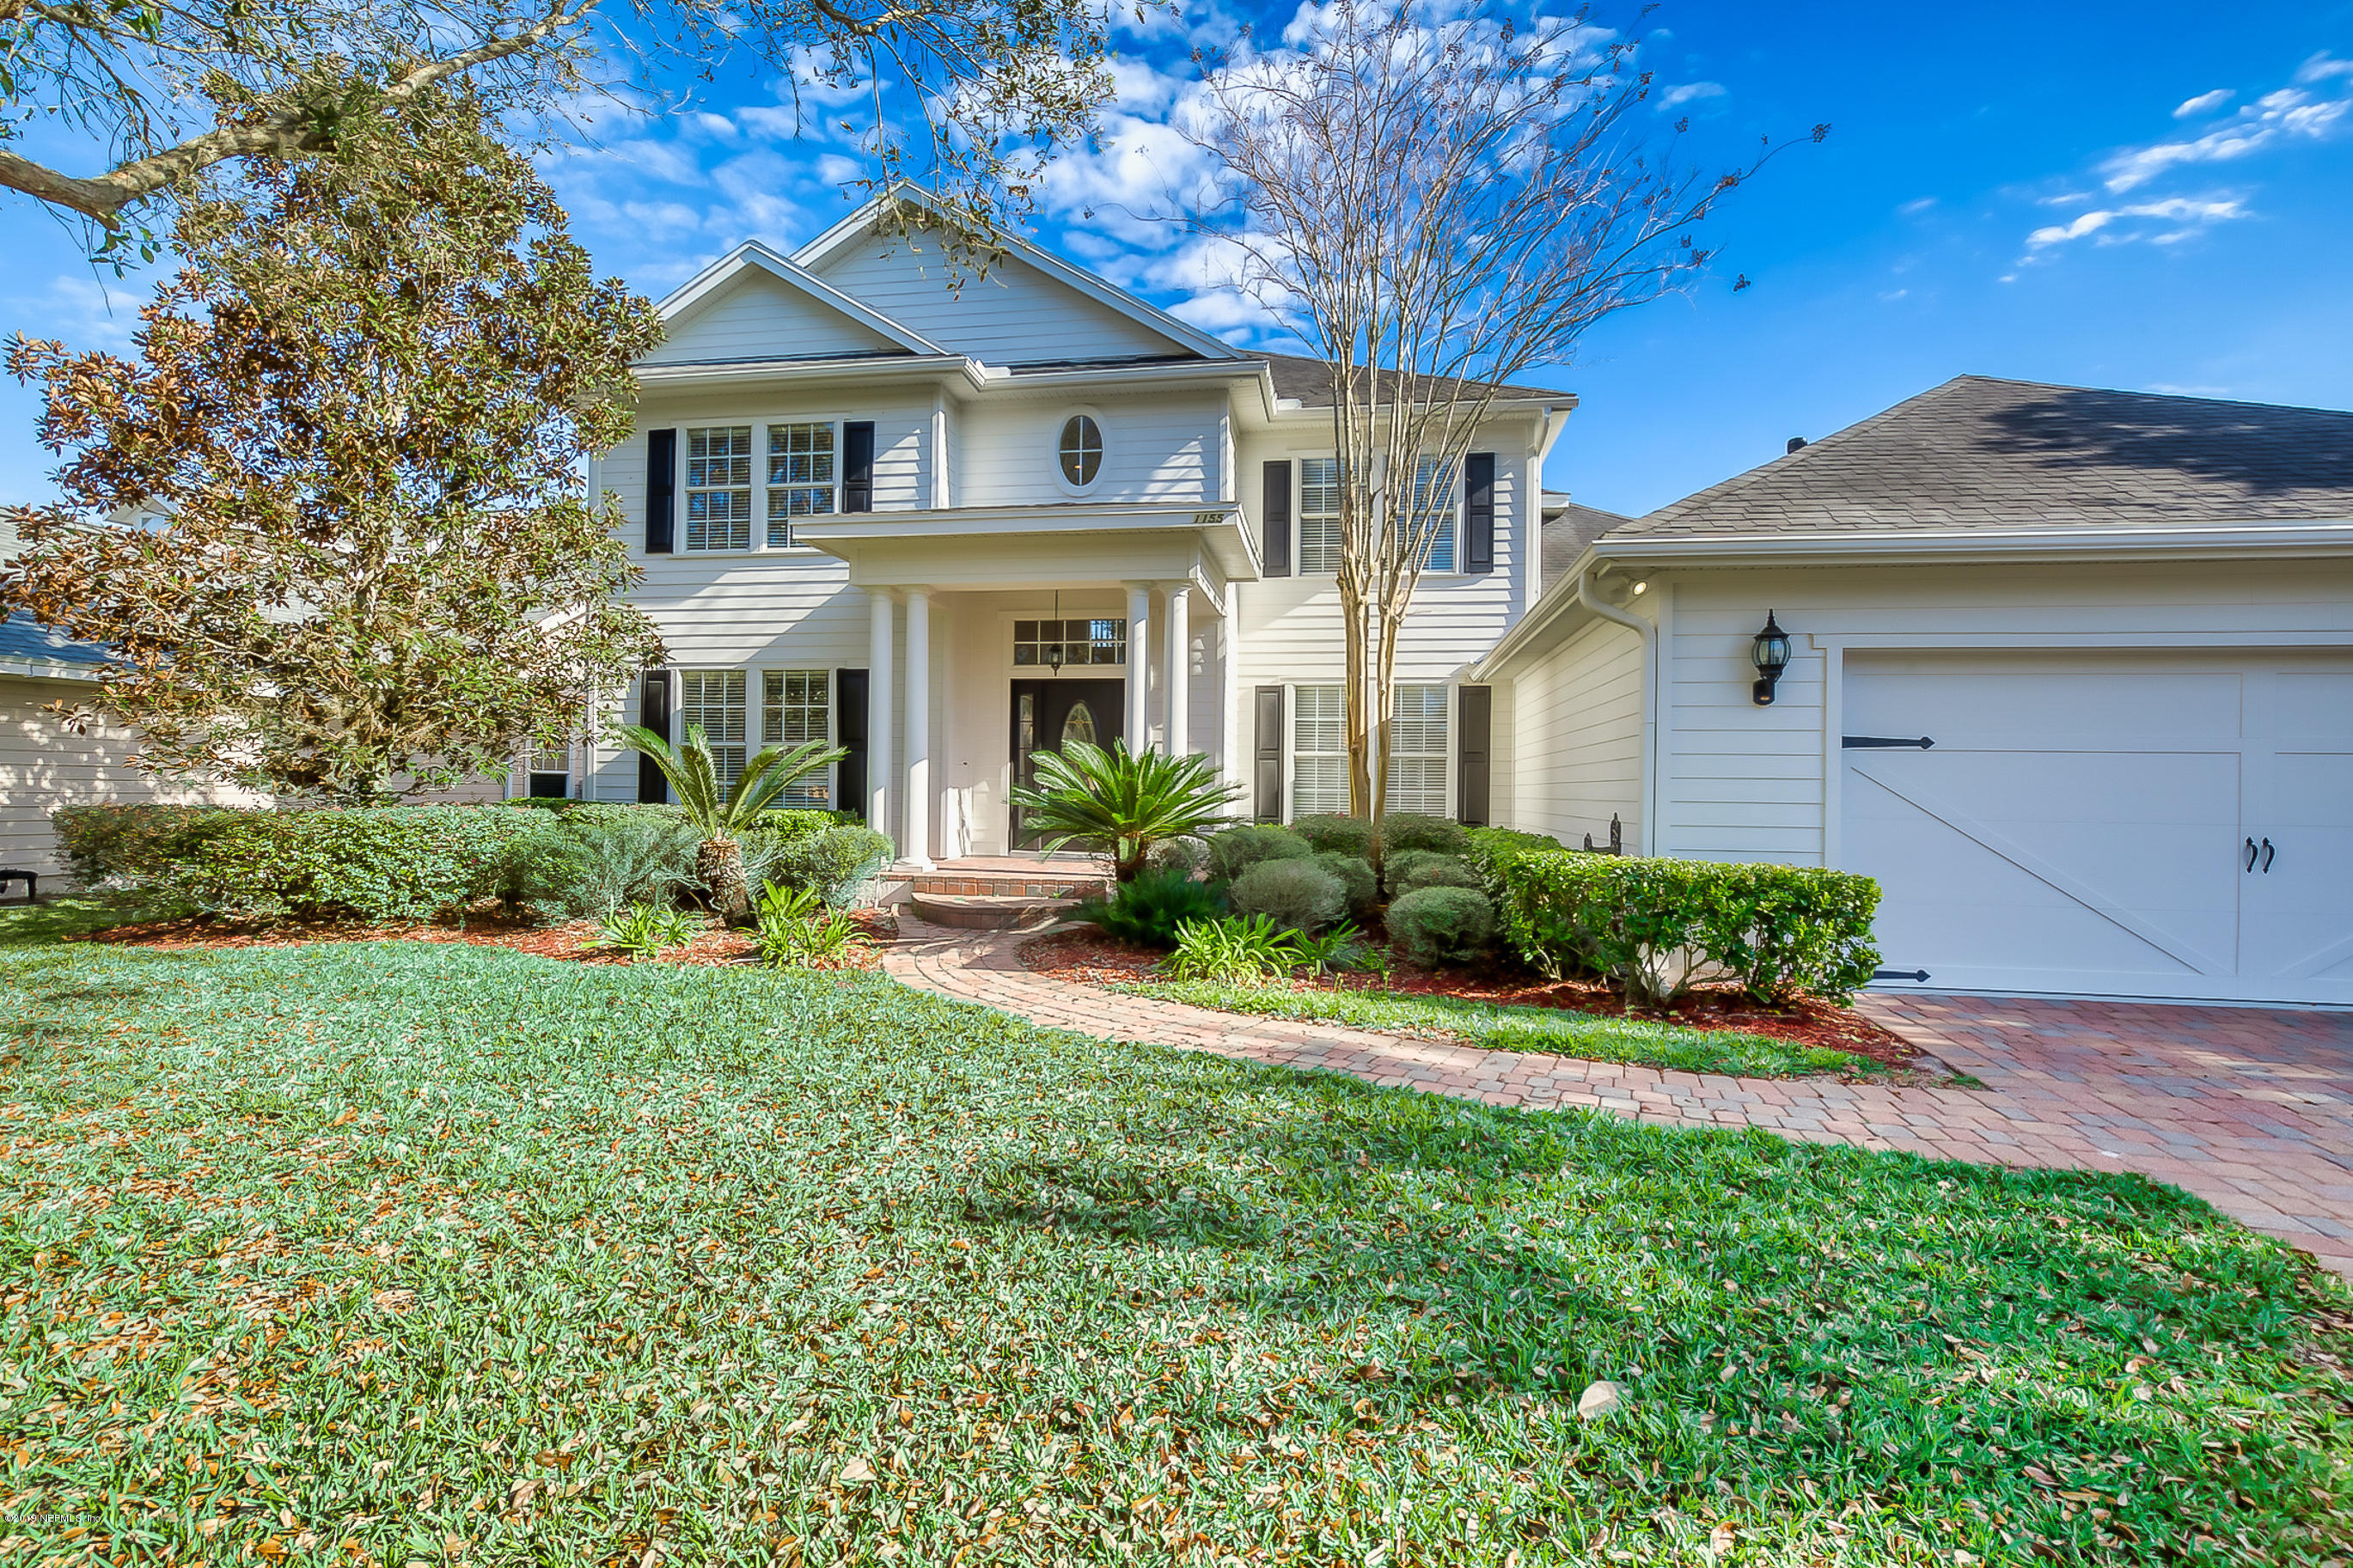 1155 EAGLE POINT, ST AUGUSTINE, FLORIDA 32092, 5 Bedrooms Bedrooms, ,4 BathroomsBathrooms,Residential - single family,For sale,EAGLE POINT,981200